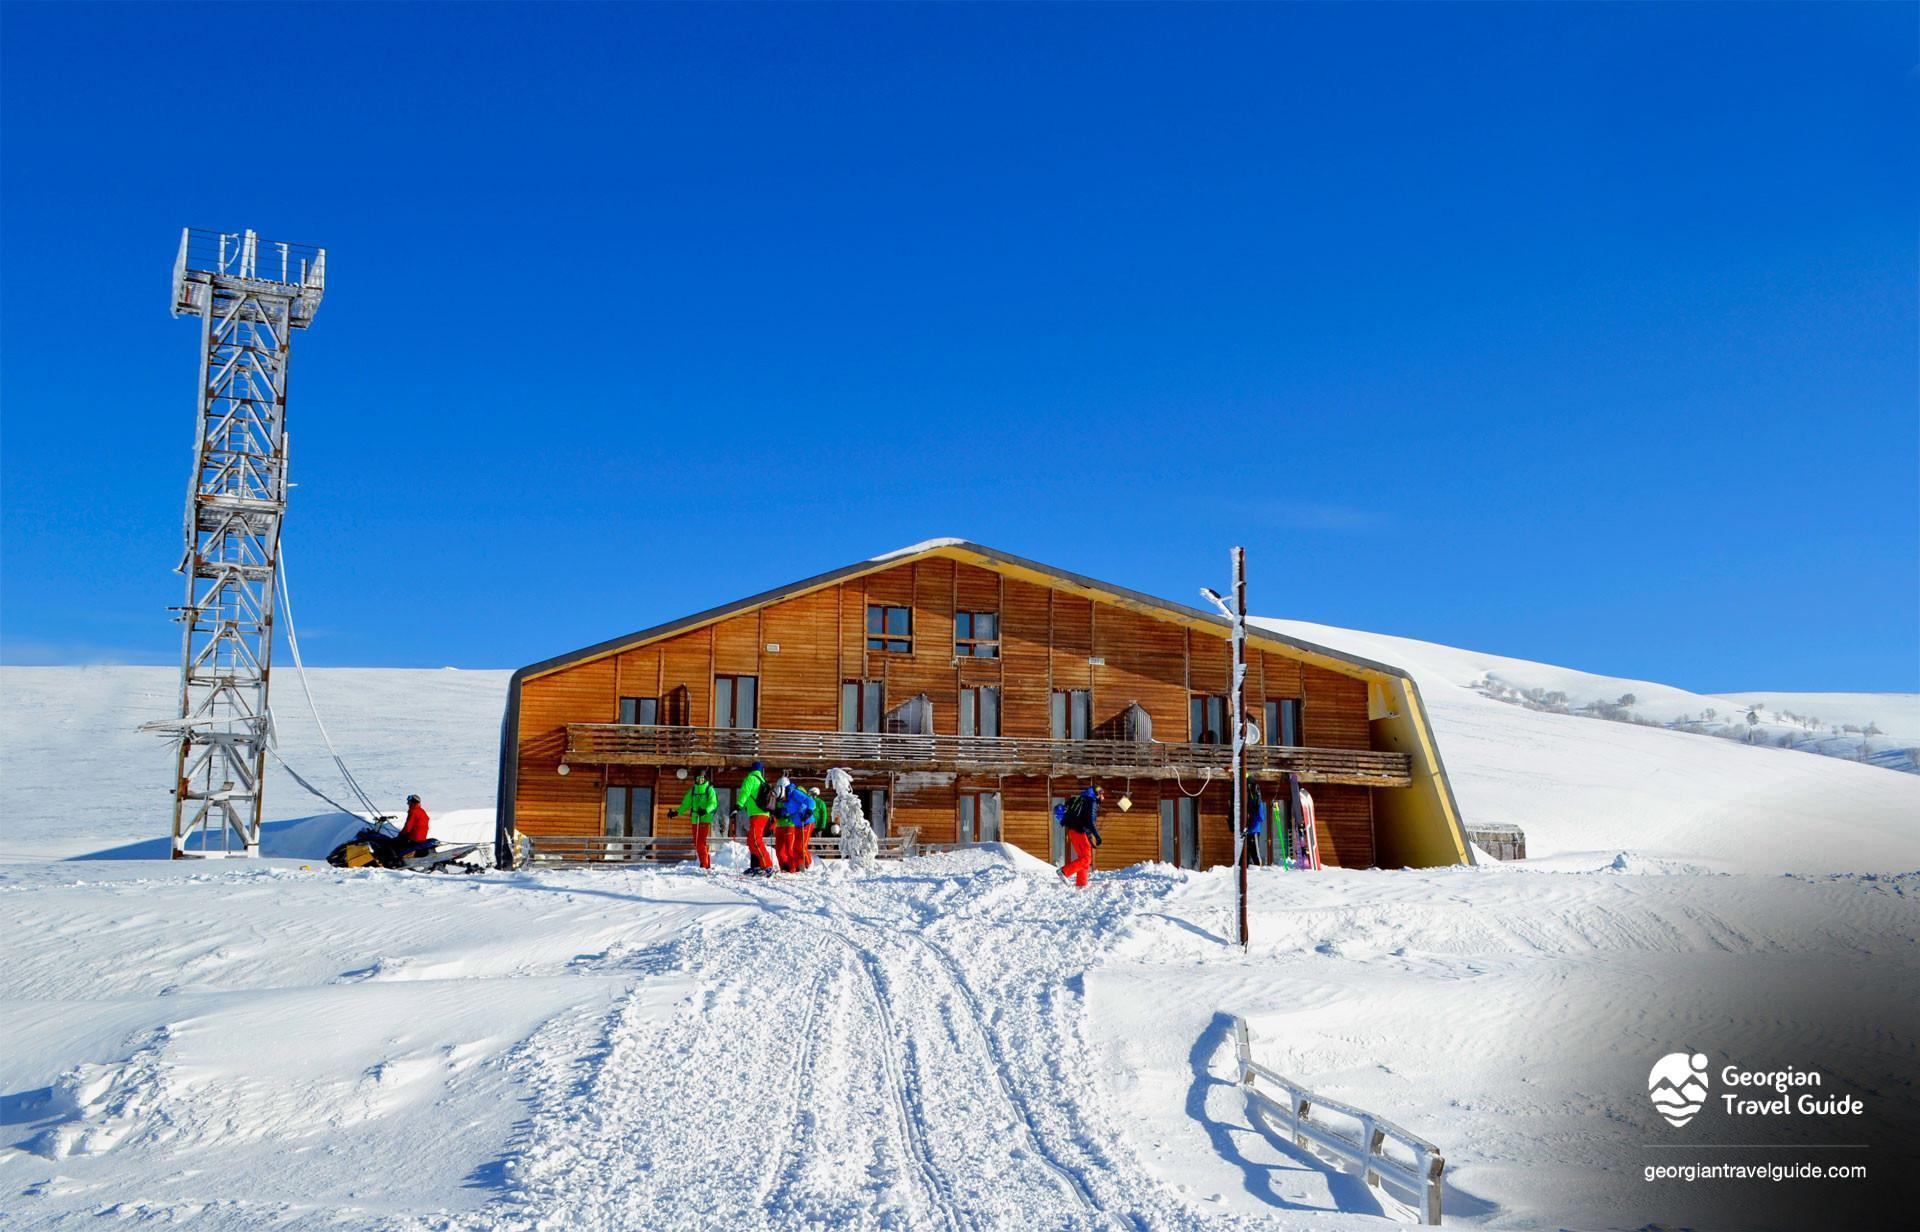 Hotel meteo at Goderdzi Ski Resort